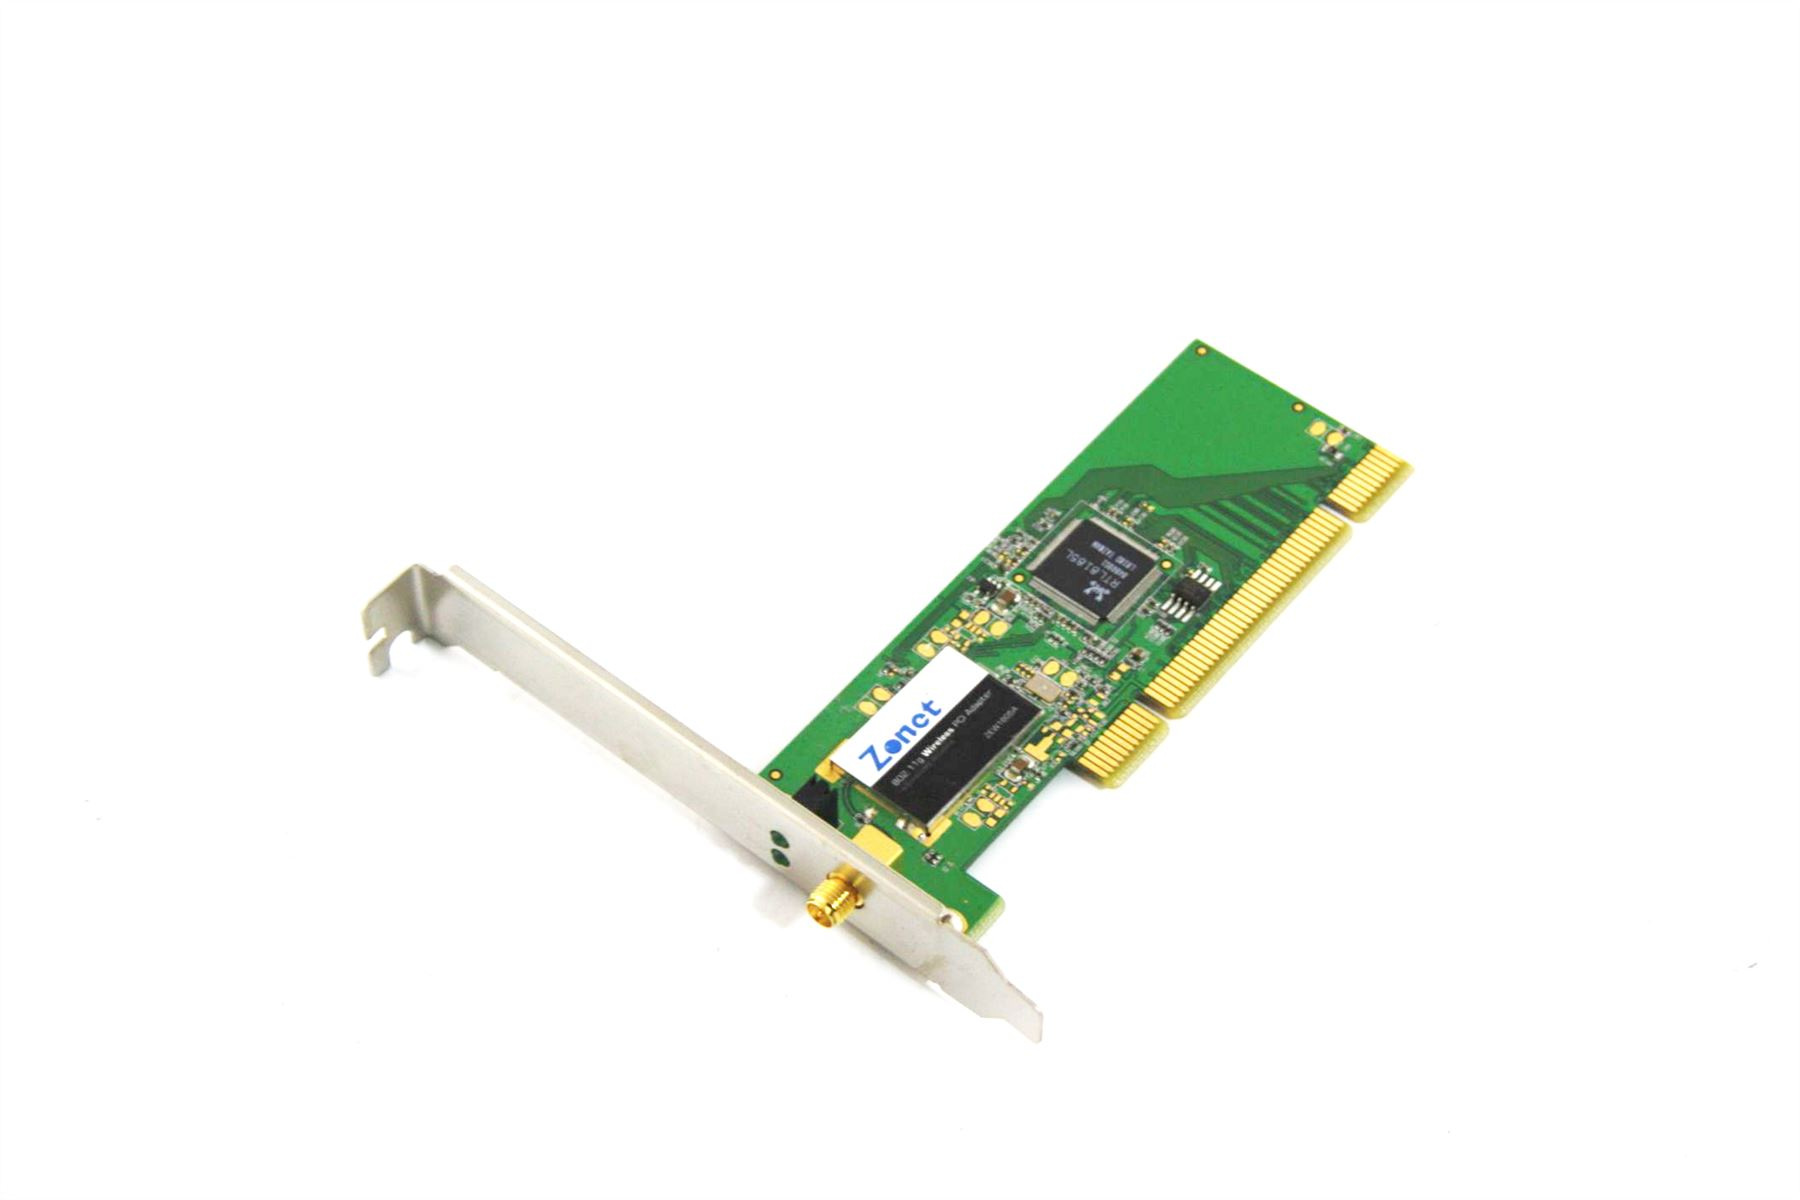 ZONET 802.11 G WIRELESS PCI ADAPTER DRIVER WINDOWS